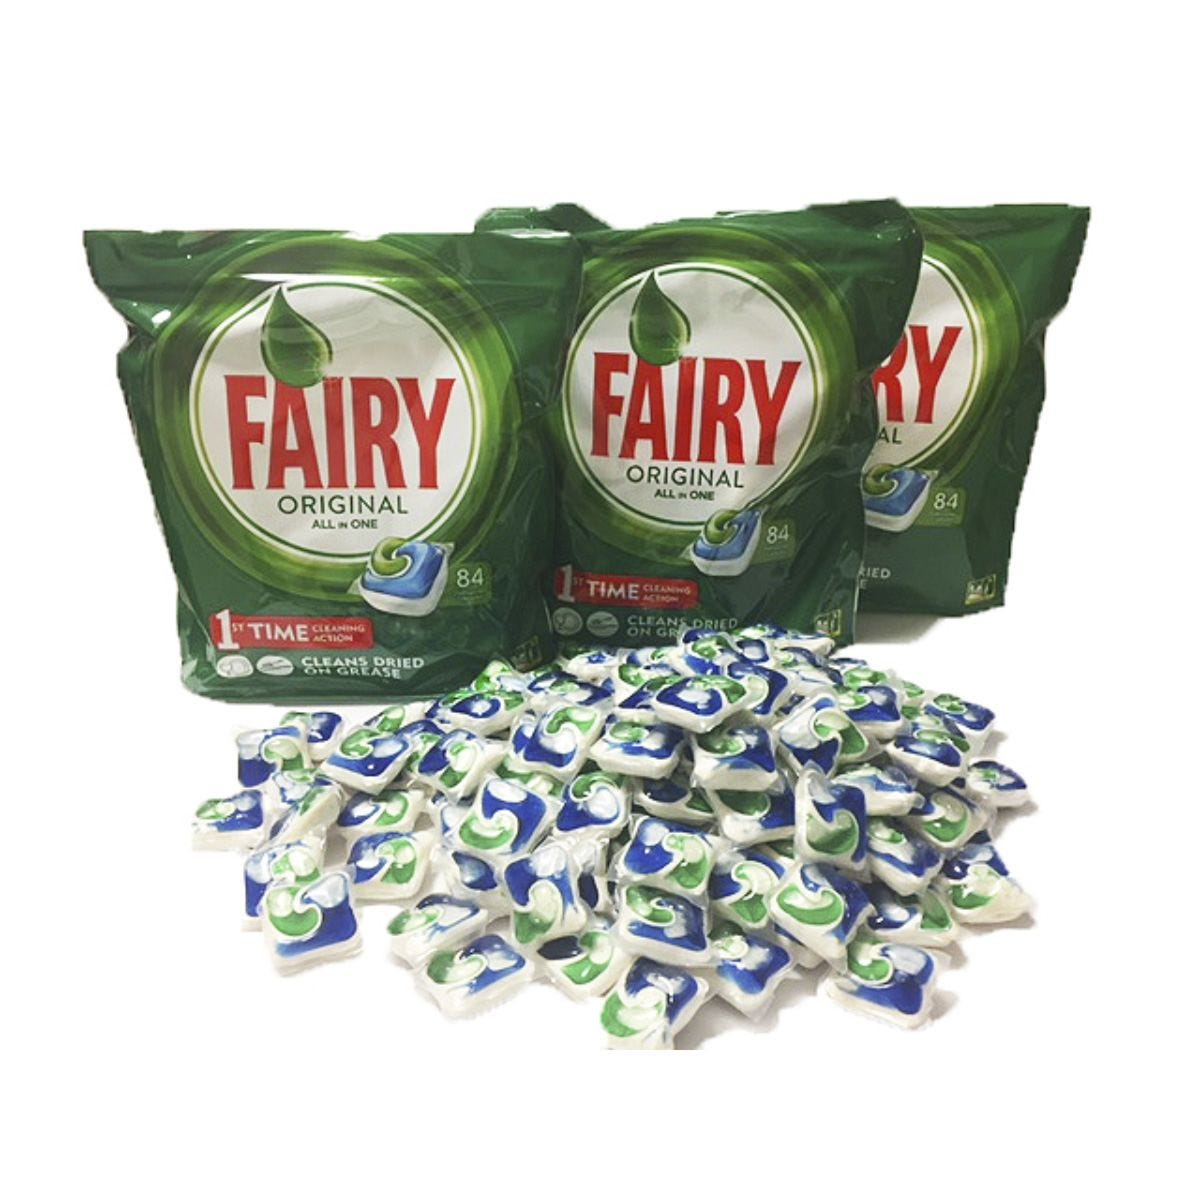 Fairy Original Dishwasher Tabs - 3 x 84pk (252 Washes)